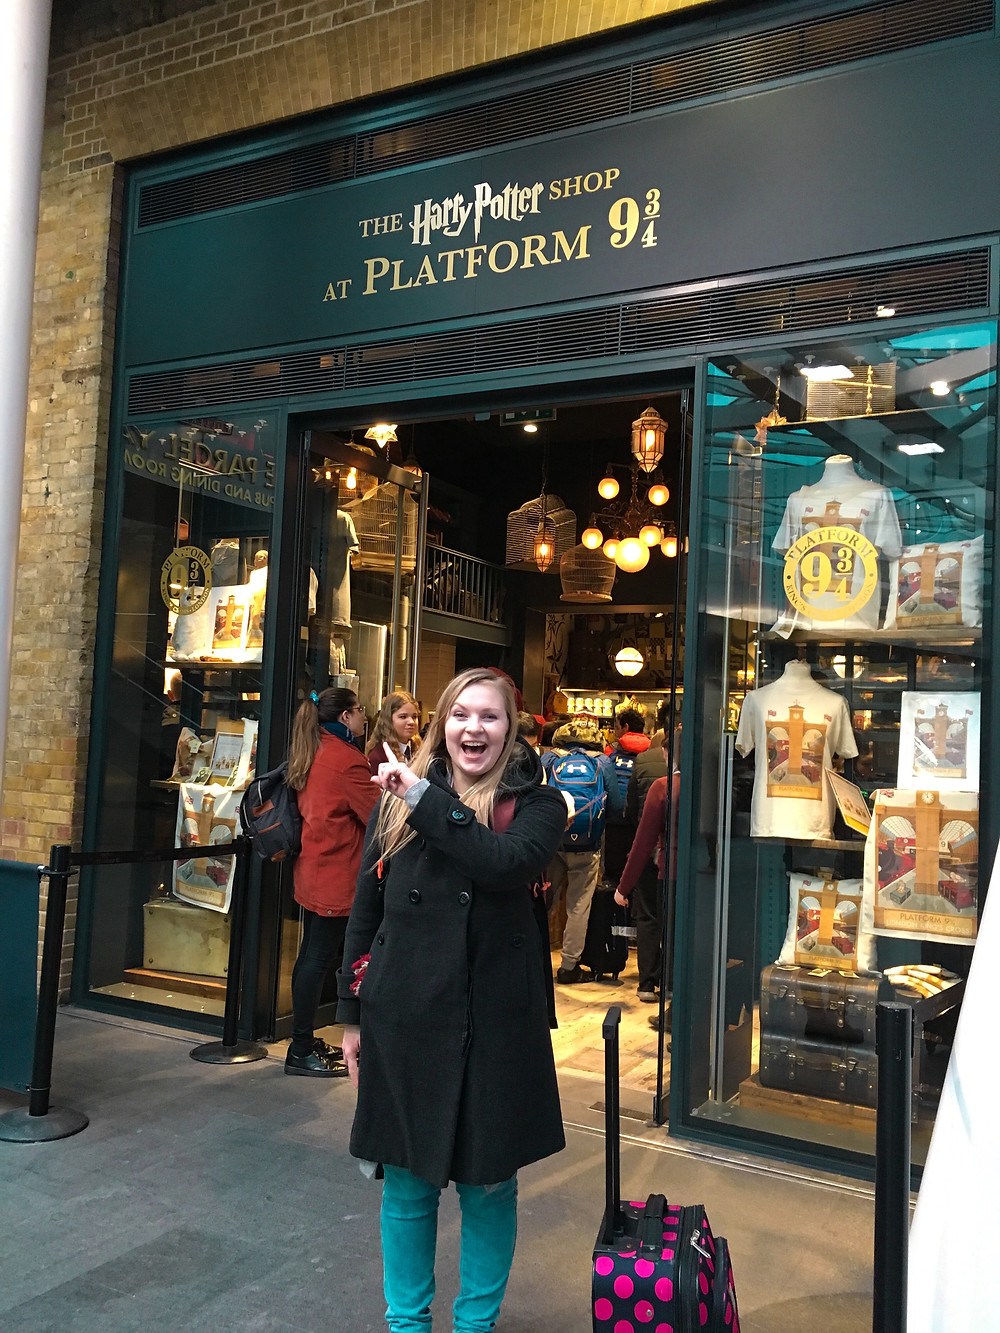 the harry potter shop at platform 9 3/4 in London